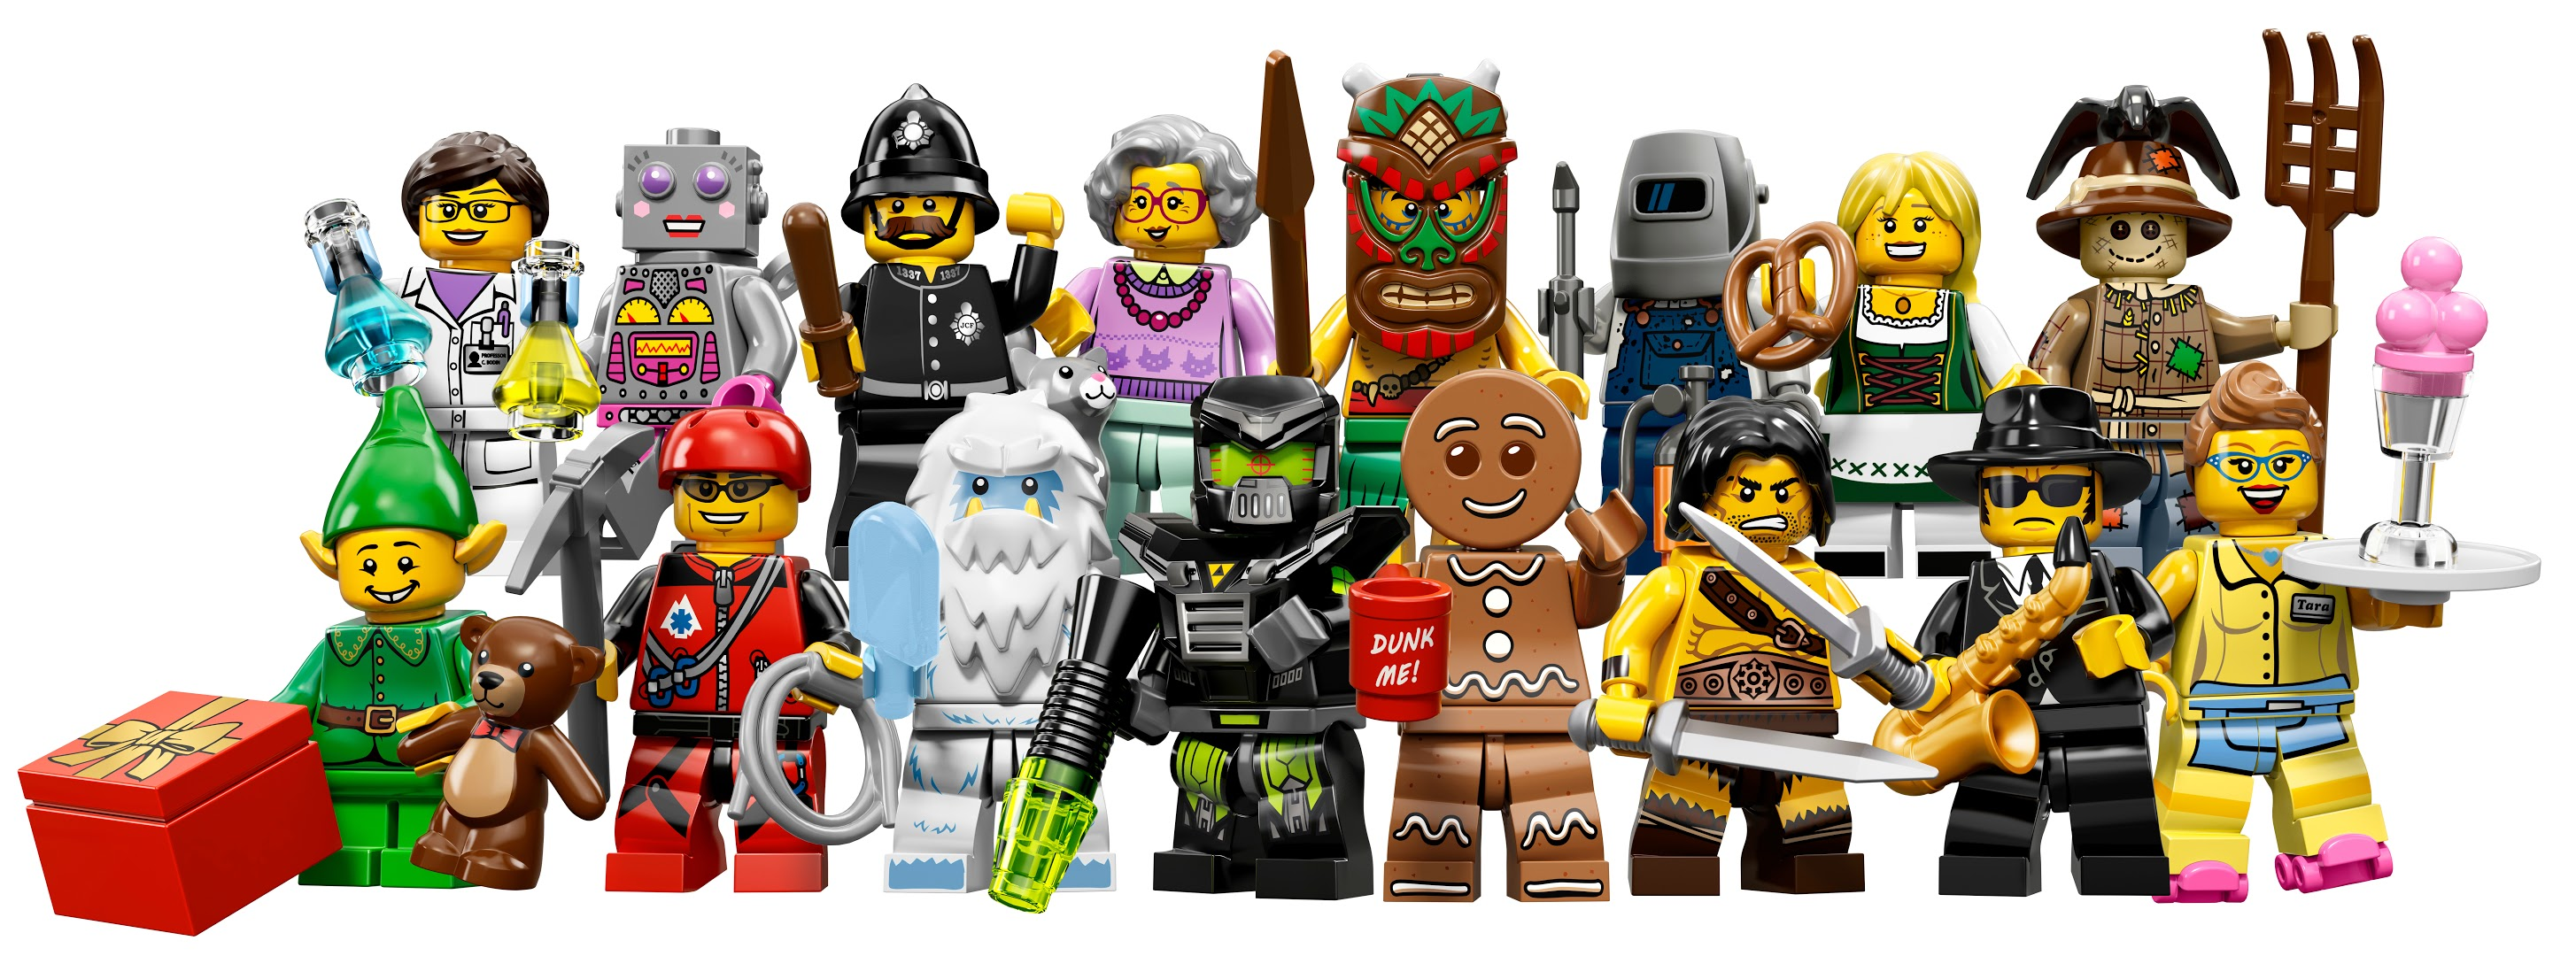 The Brickverse: Theme Guide: Lego Minifigures, Series 11